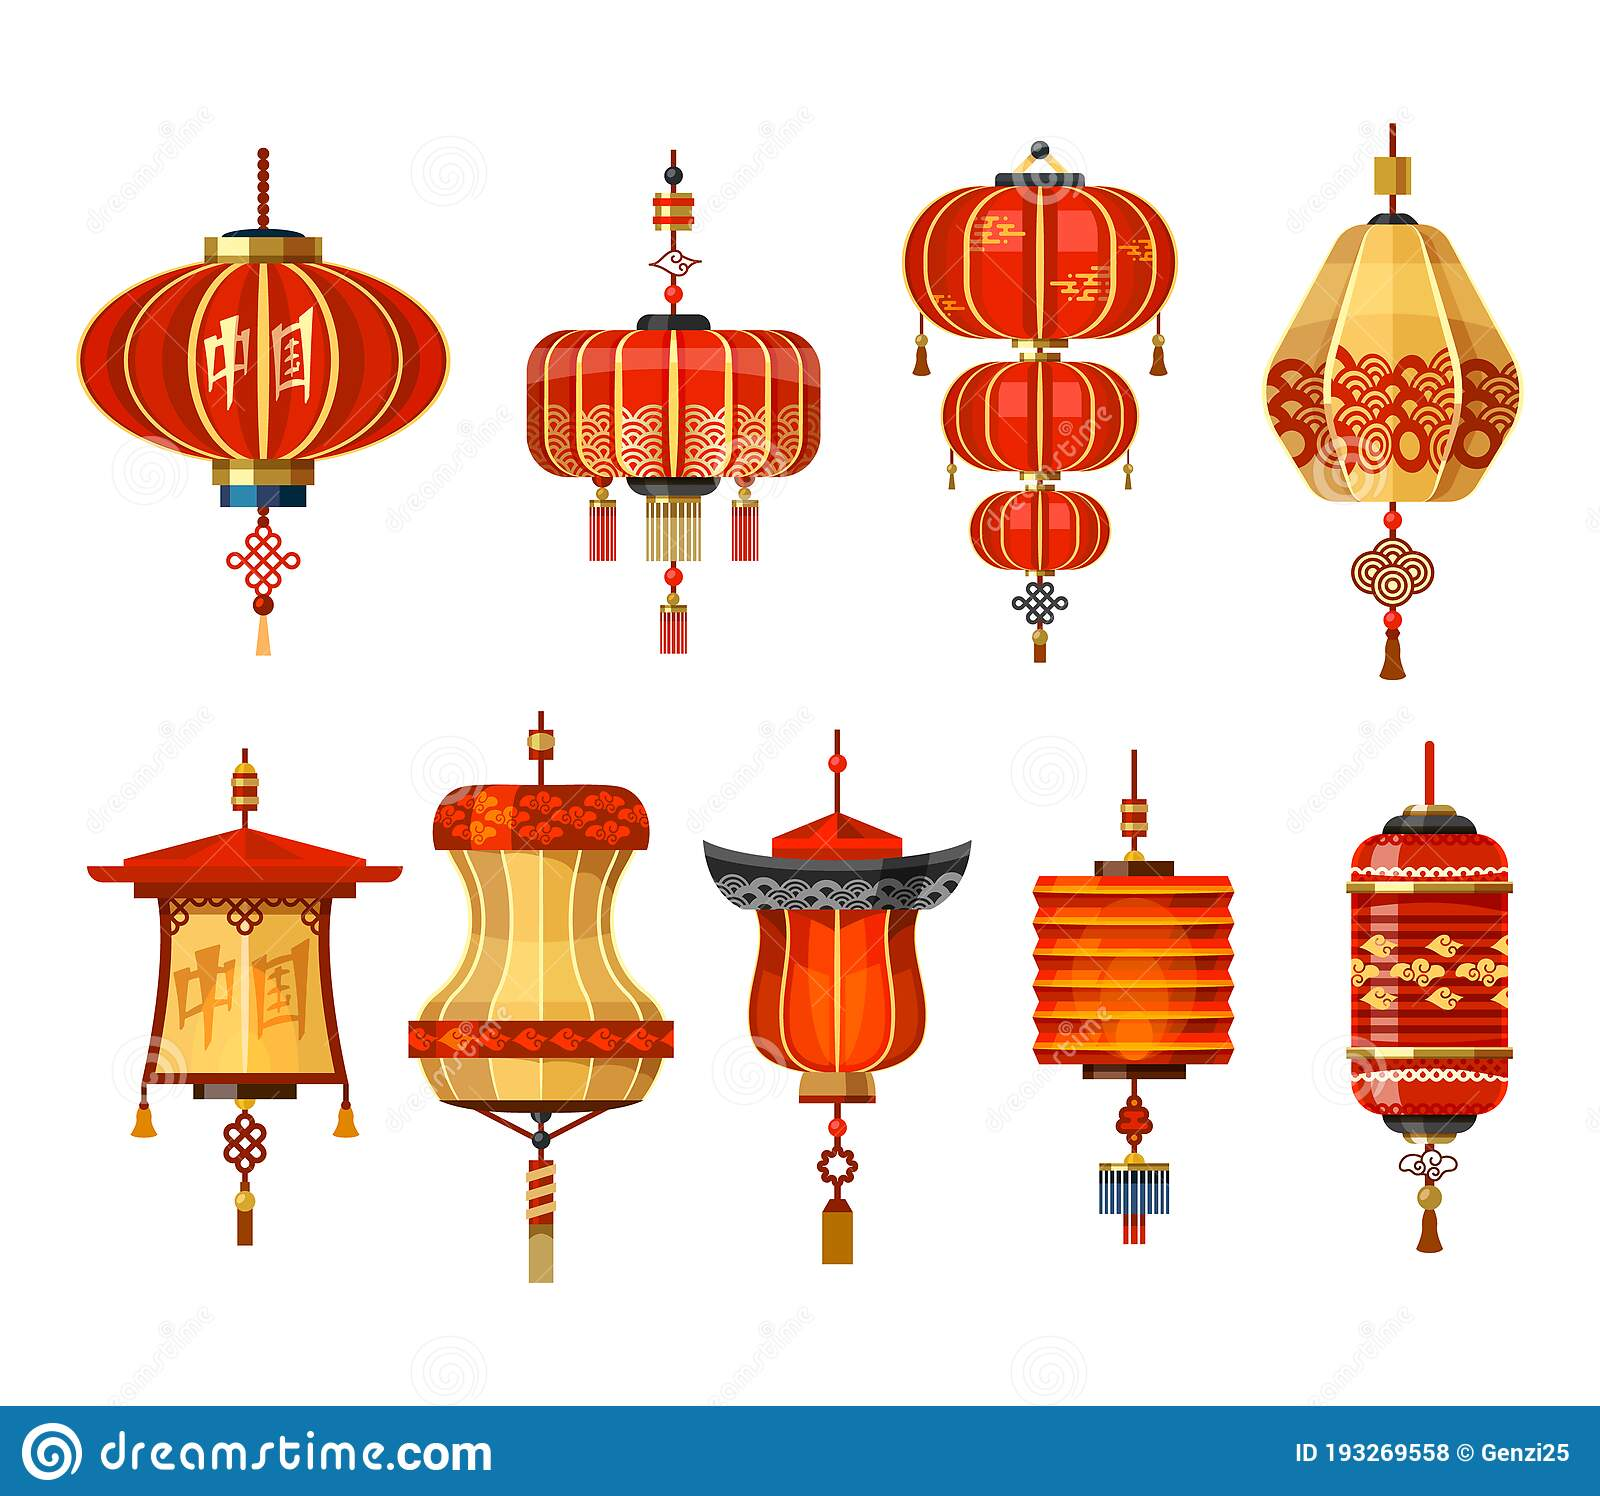 Chinese Lantern Lamps China New Year Decoration Stock Vector Illustration Of Calligraphy Decor 193269558